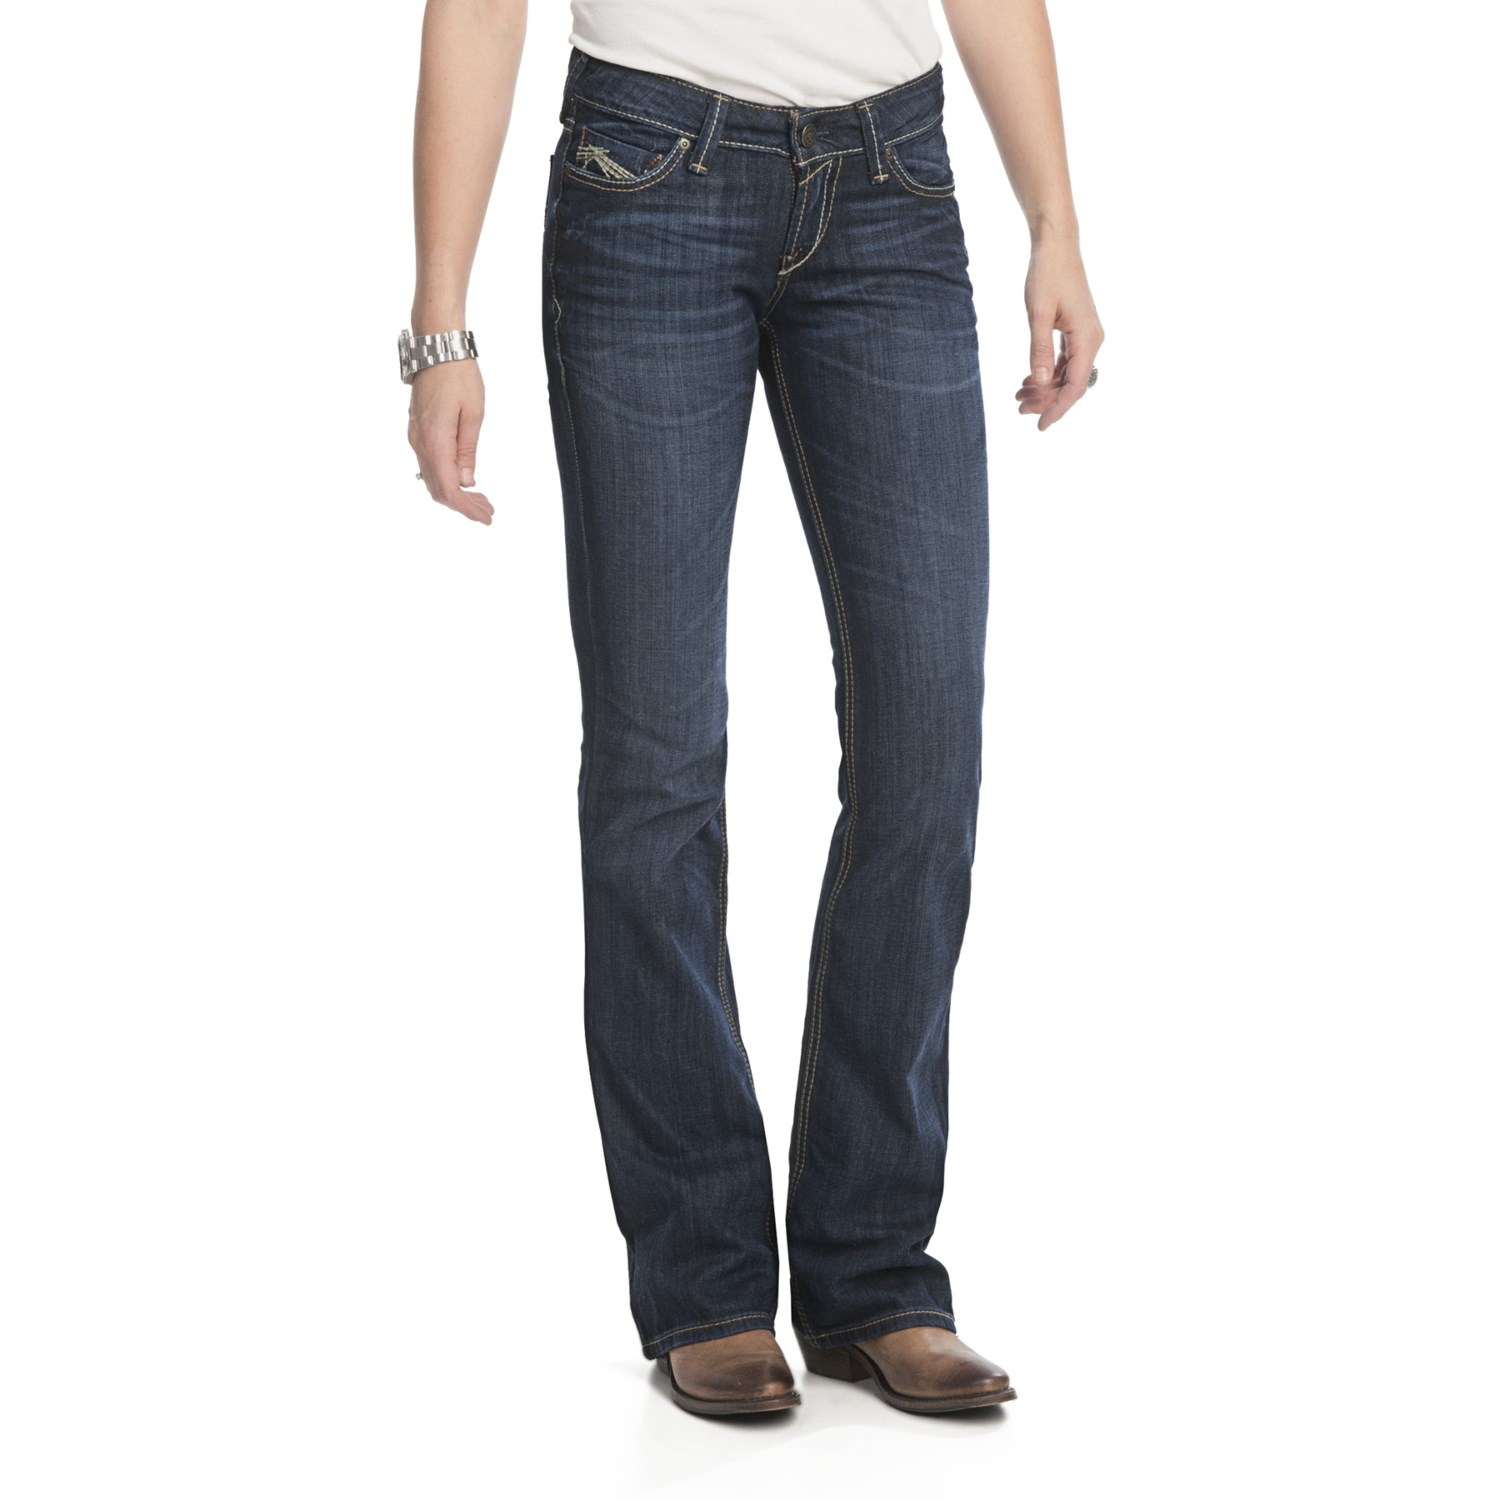 Ariat Ruby Stretch Jeans Slim Fit Low Rise Bootcut For Women